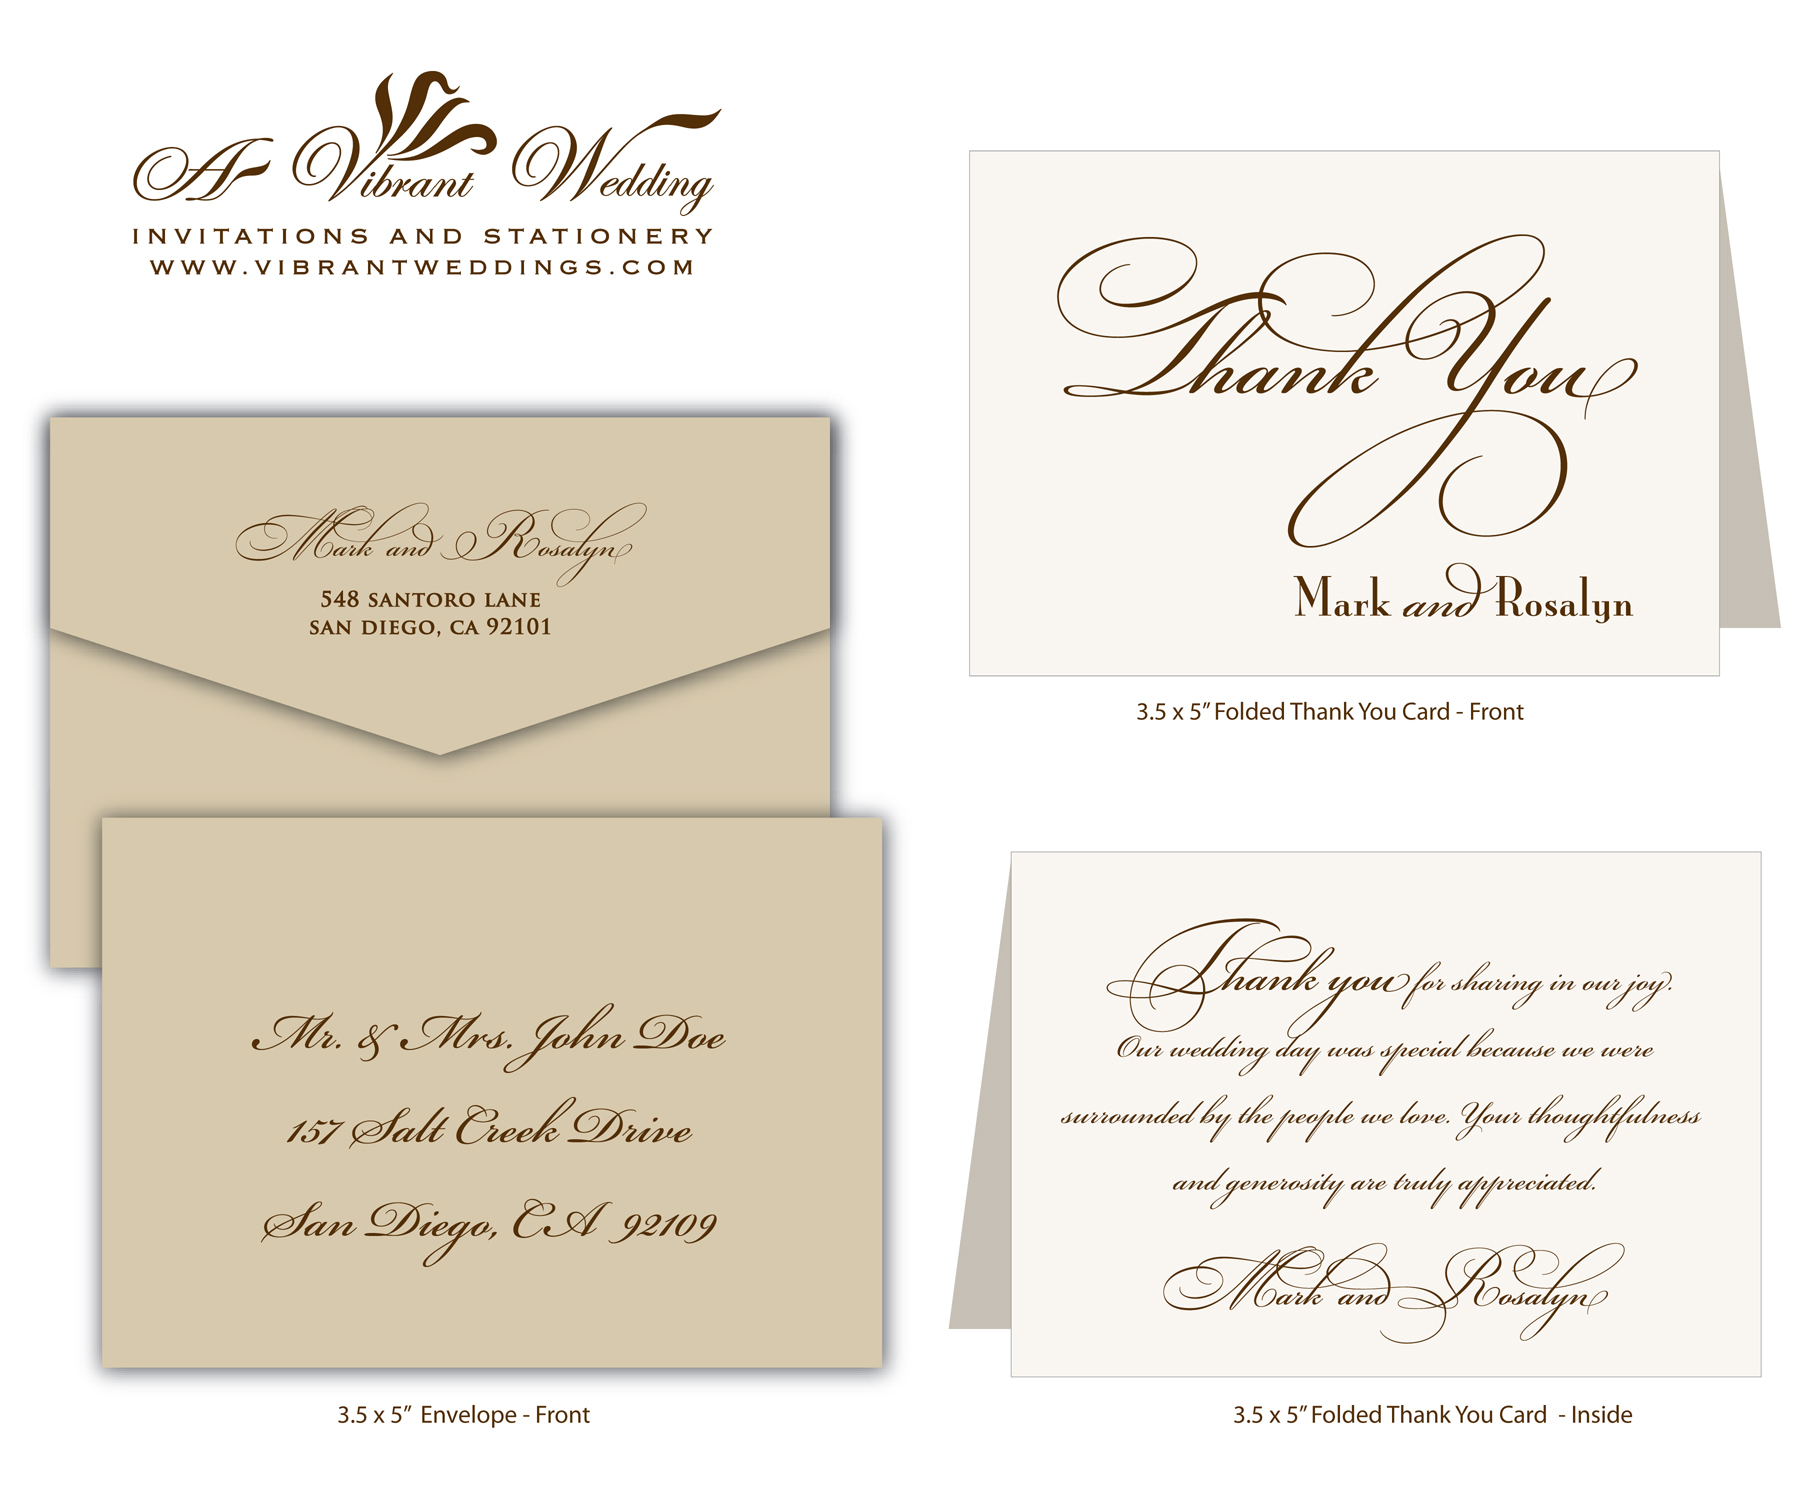 Wedding Gift Thank You Note Wording : Over 250 Cards Stocks Colors And Envelopes Custom Thank You Cards